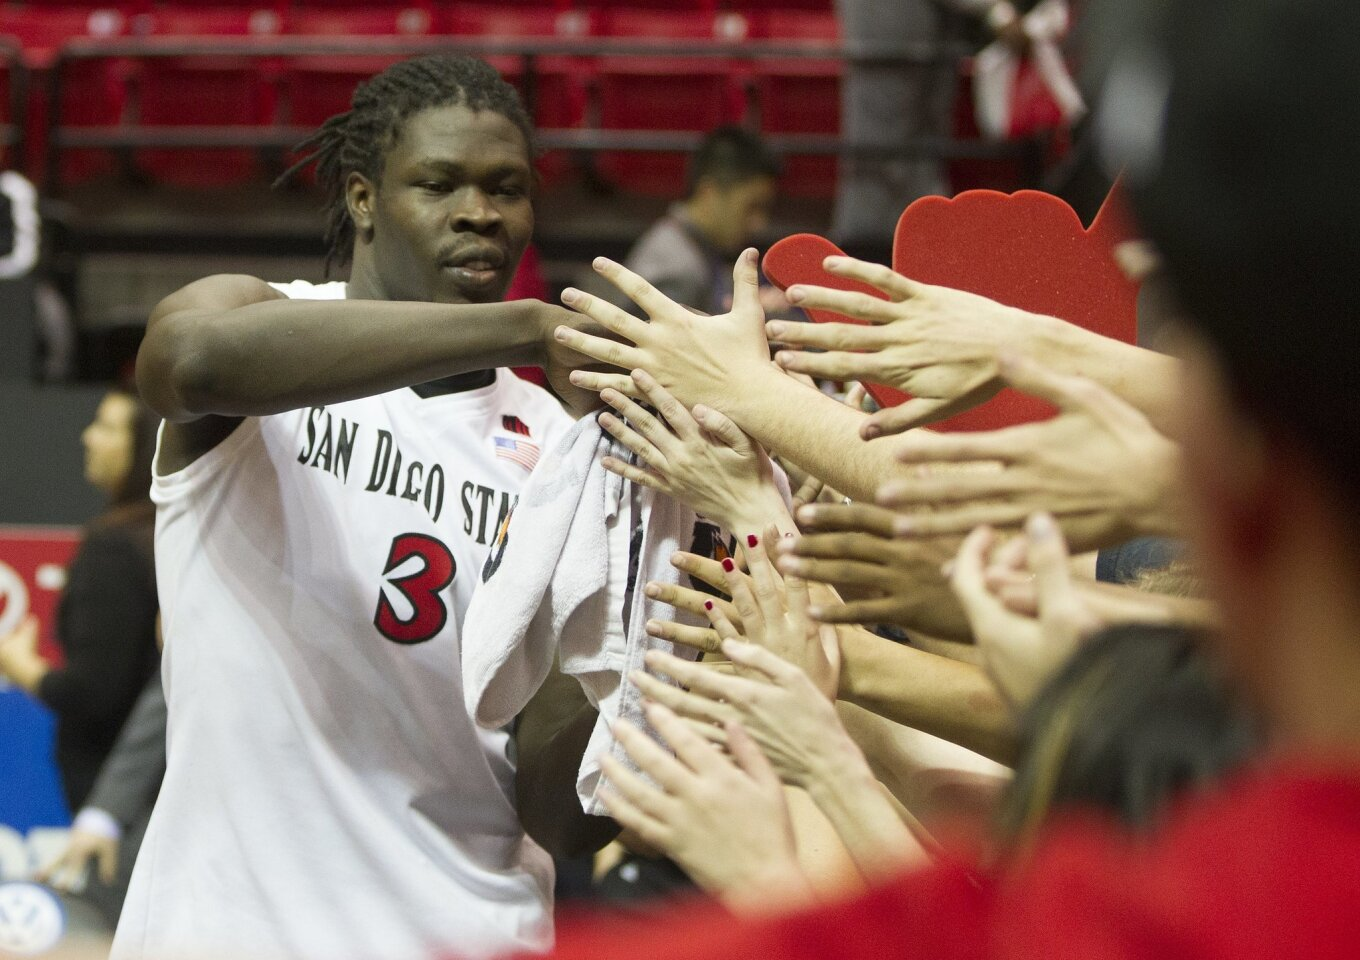 San Diego State vs Fresno State Mens Basketball at Viejas Arena.San Diego State Aztecs forward Angelo Chol (3) is congratulated by the students section after beating Fresno State.